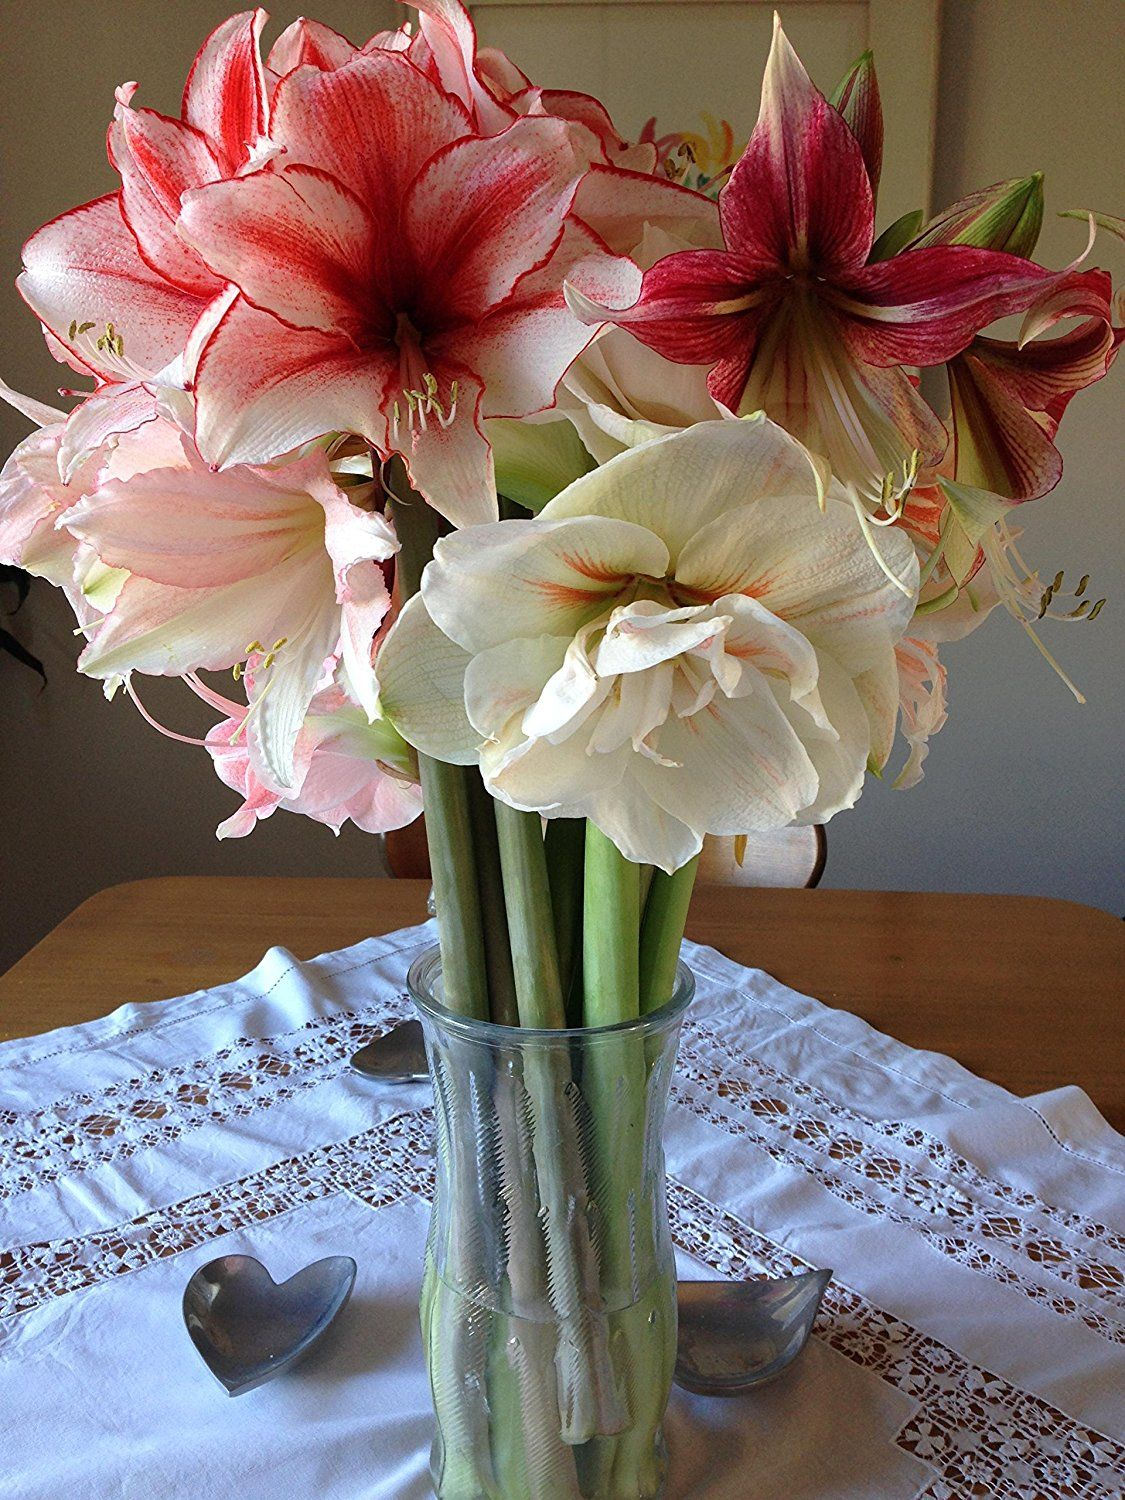 The most amaryllis mix we ever did see